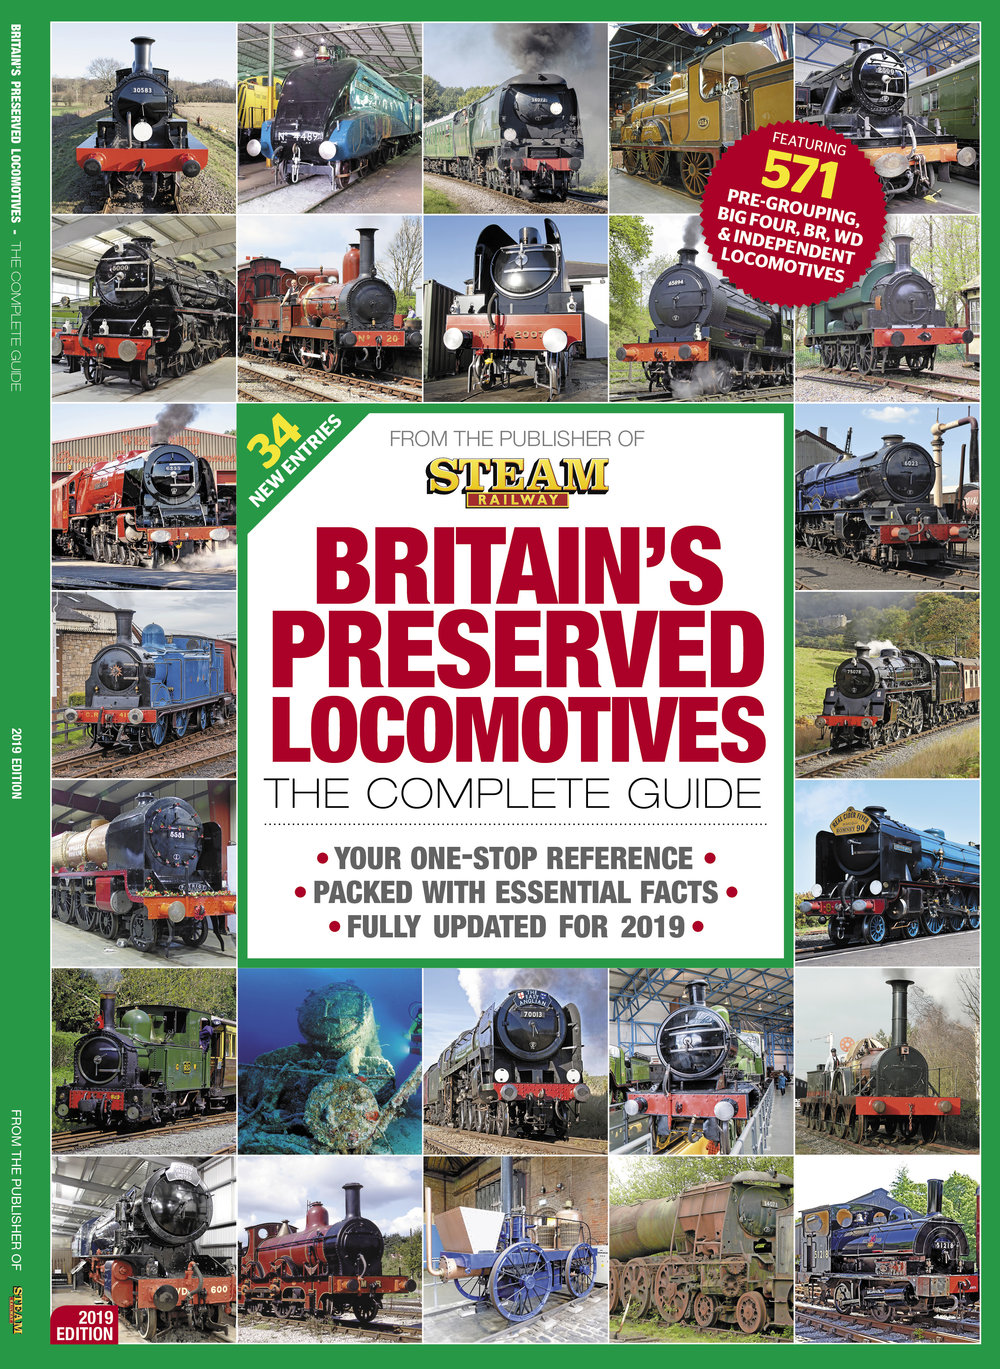 Britain's Preserved Locomotives: The Complete Guide  2019 Edition is on sale now!  Get your copy today.